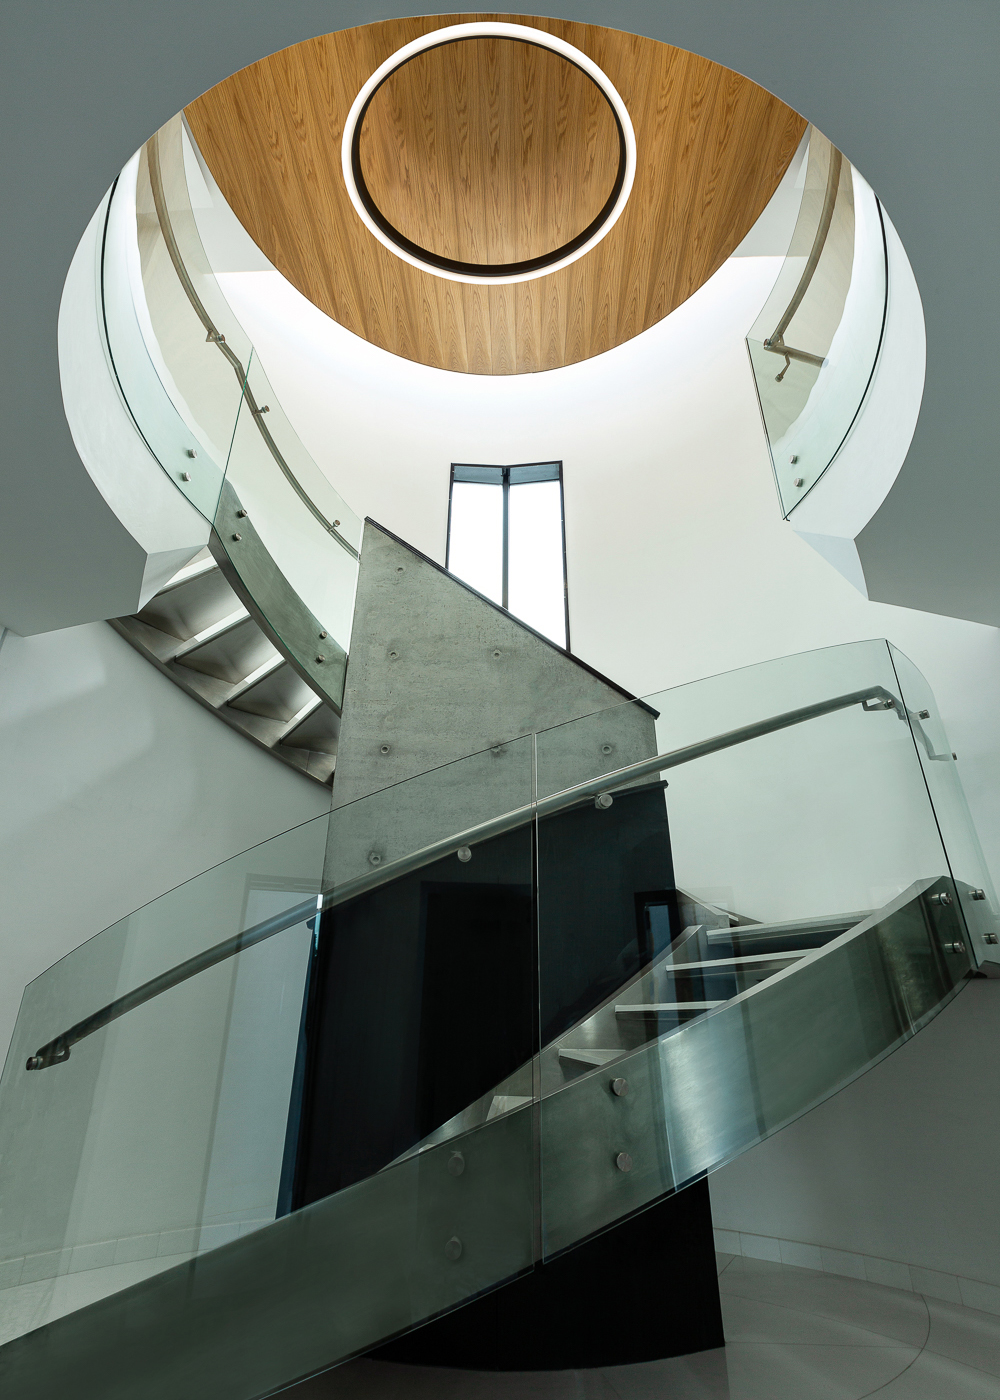 Modern architecture photography, grand staircase. Top architectural interior photography by Ella Bessette.